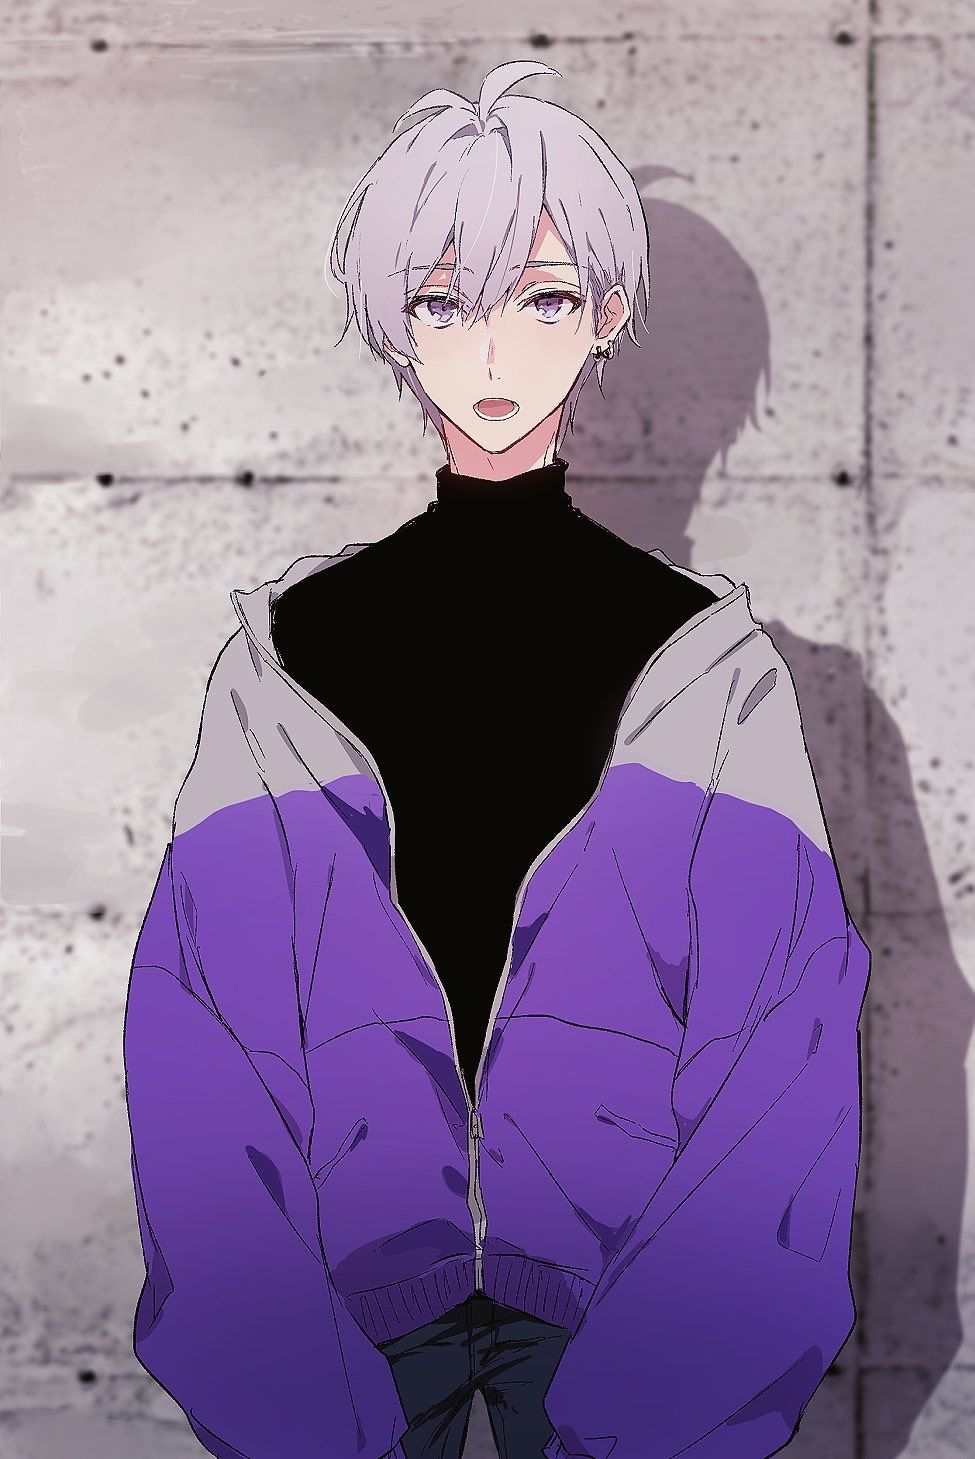 Pin By Animepic Amv On Twitterイラスト Anime Drawings Boy Anime Cute Anime Boy